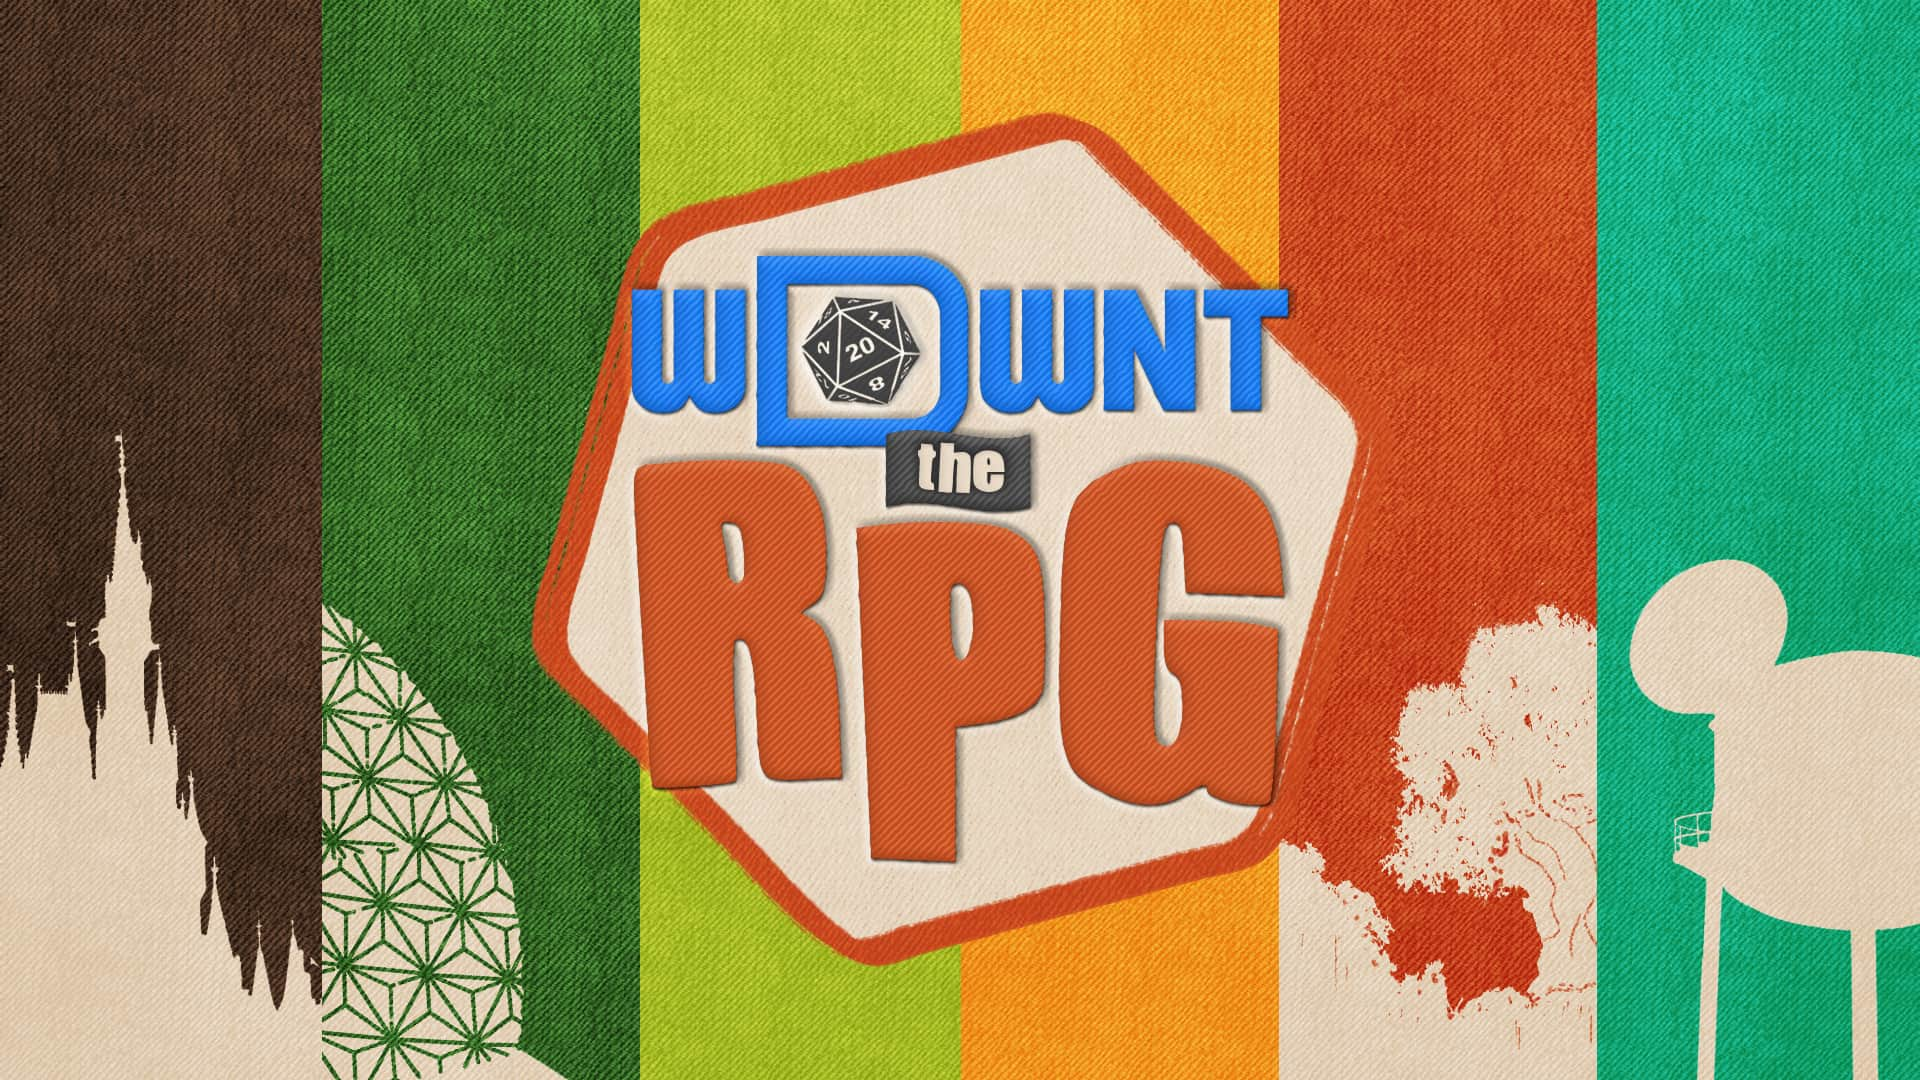 WDWNT The RPG Logo and Background Graphic